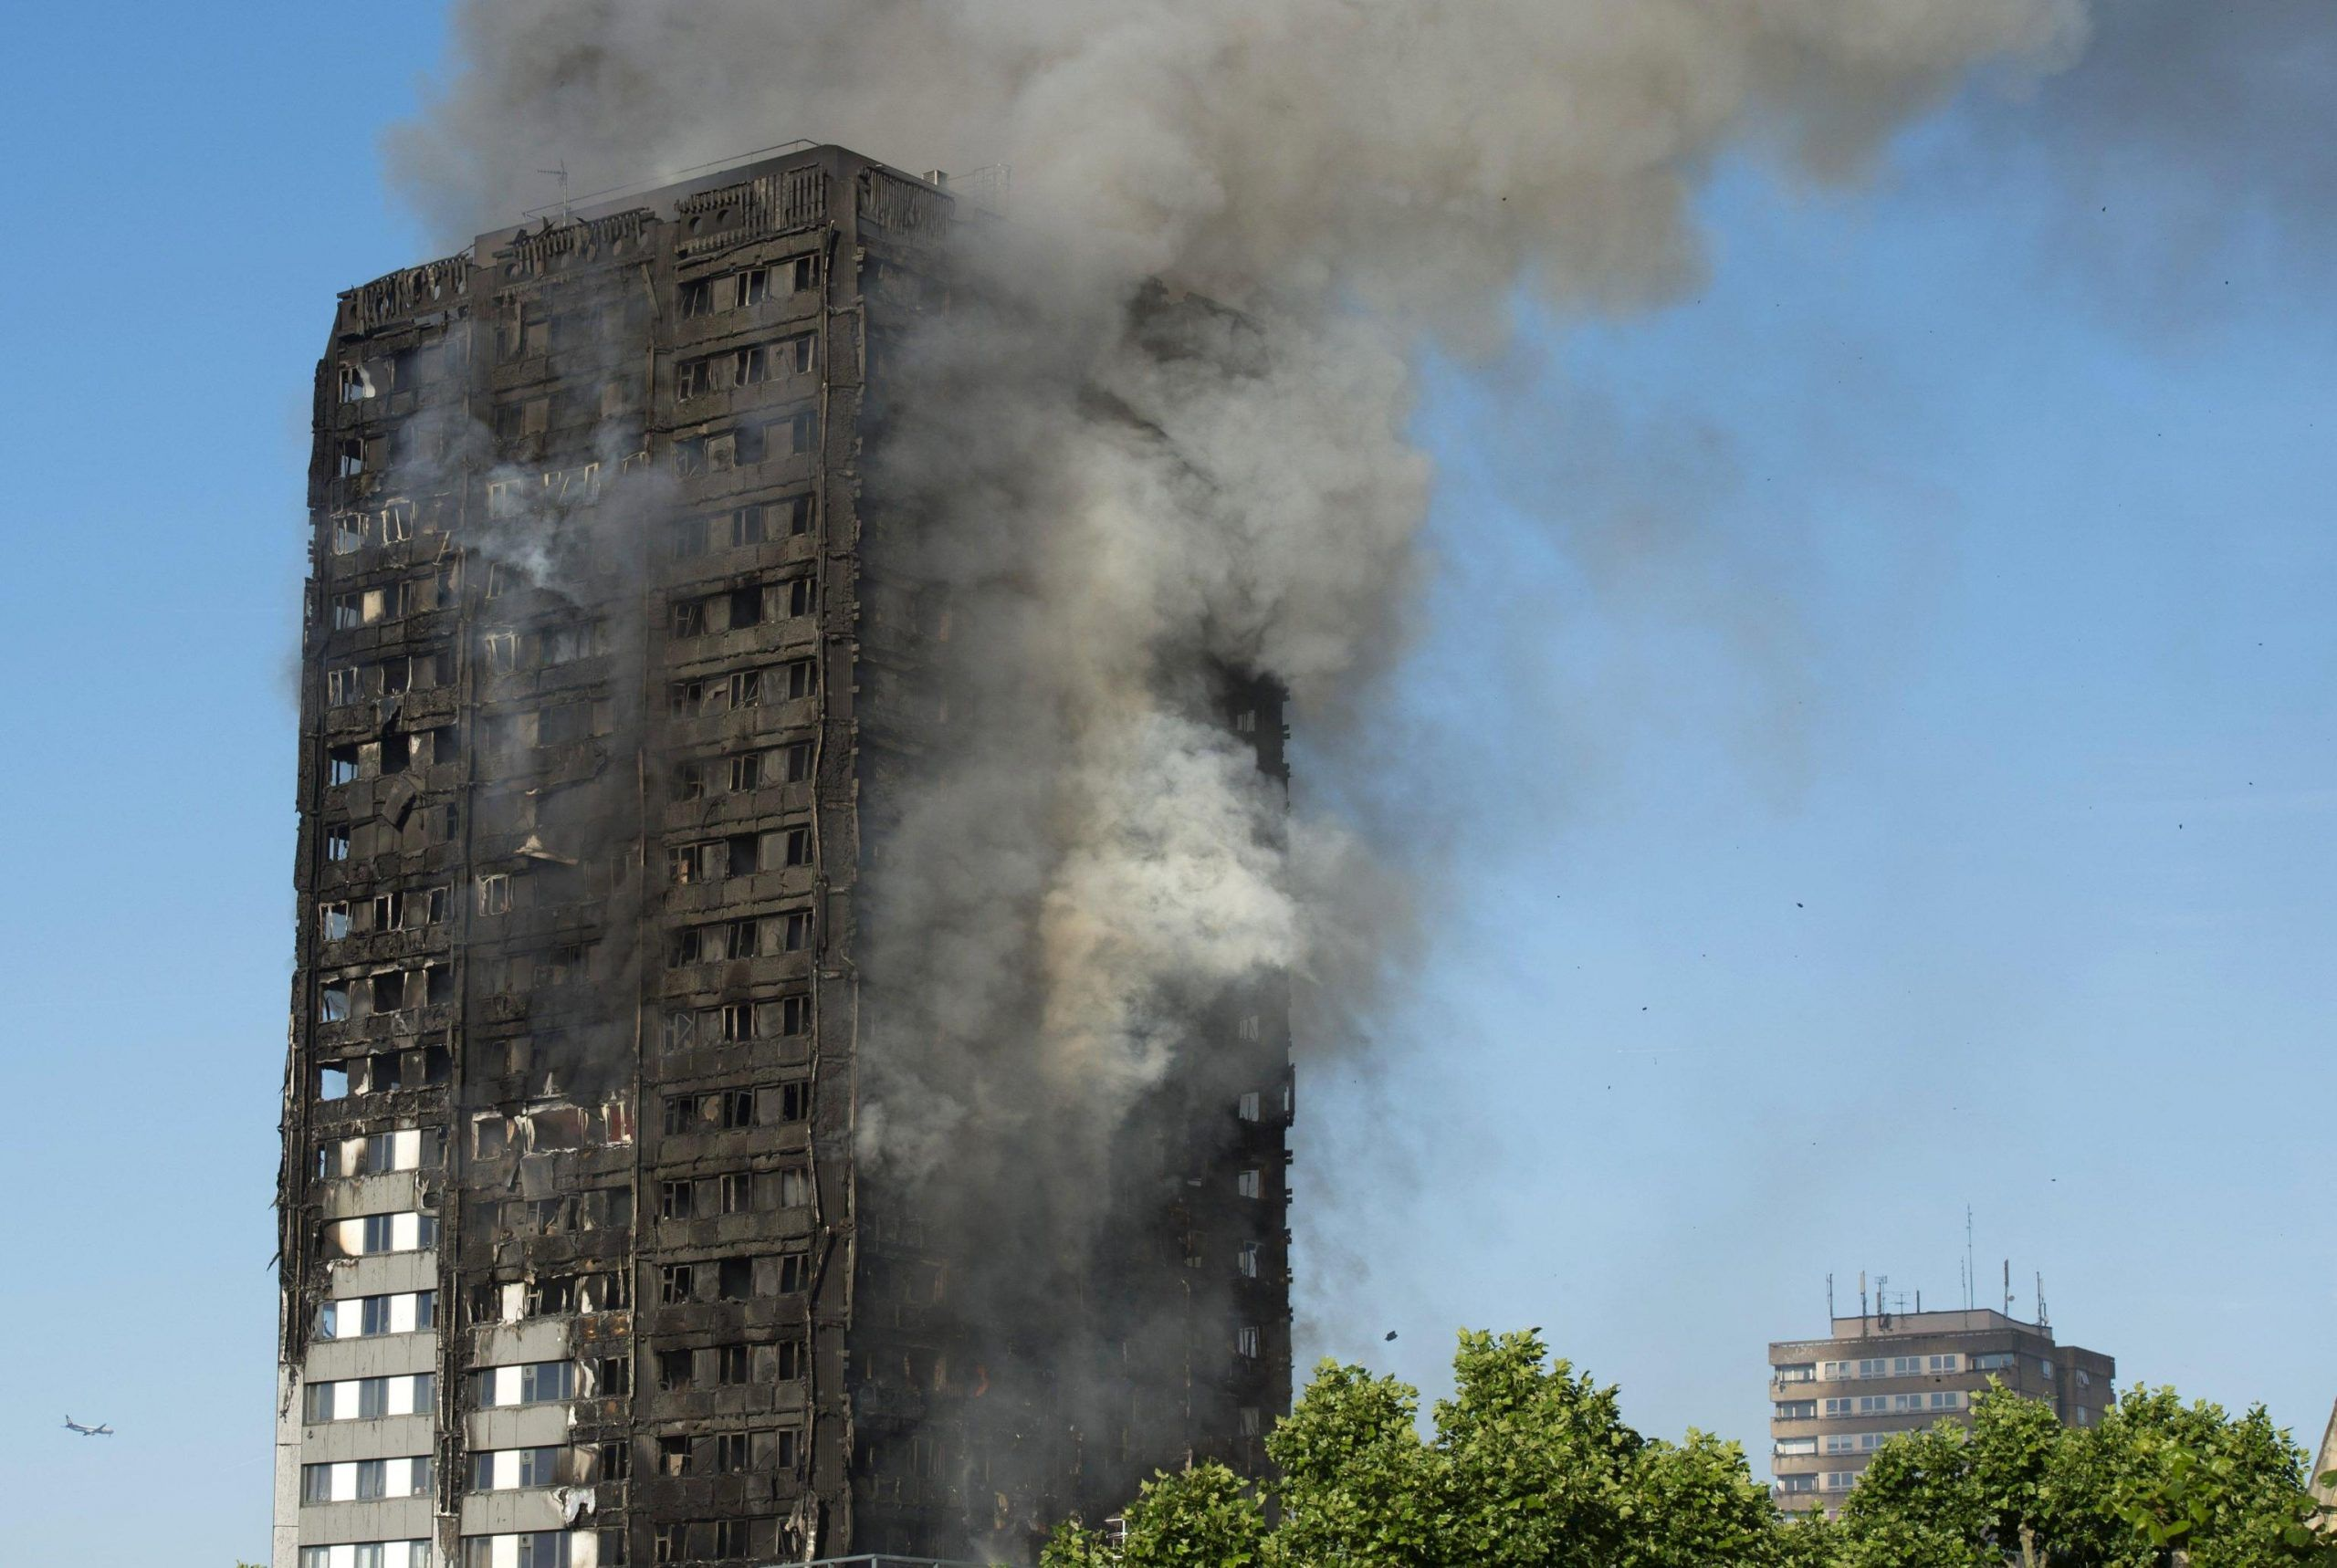 Fire at Lancaster West Estate in London